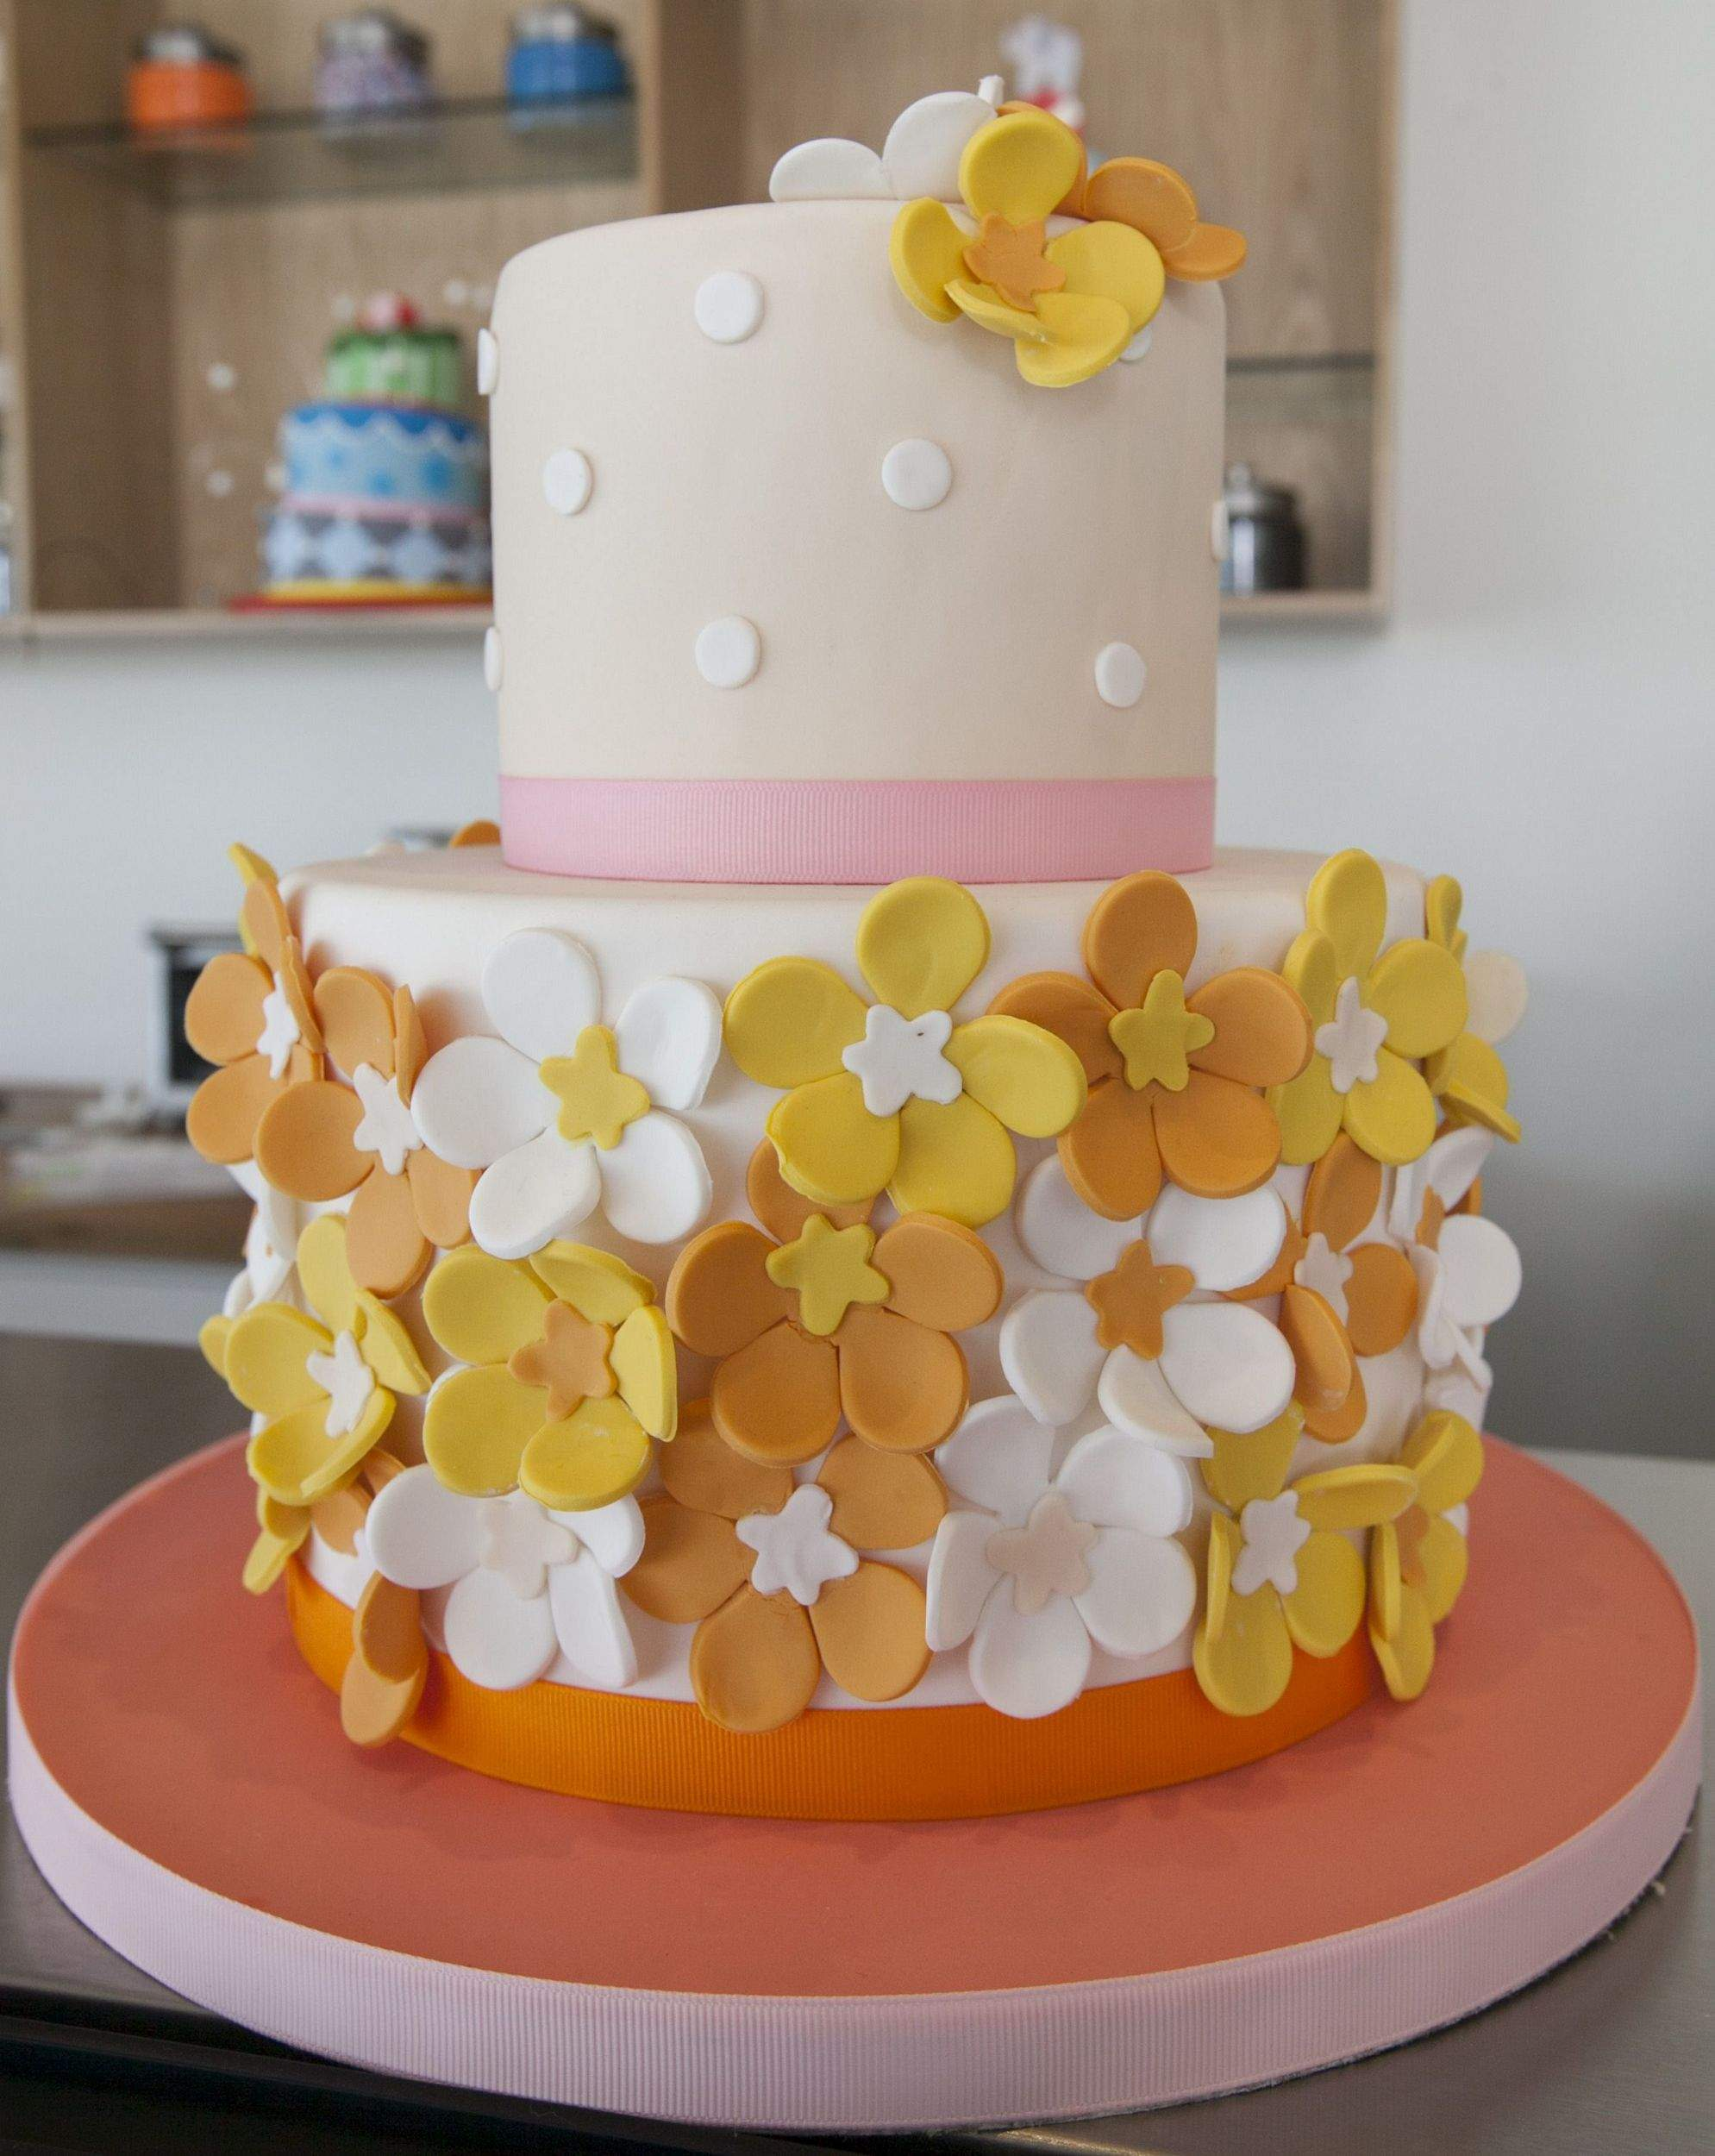 New Shop Will Make You An Ace Of Cakes